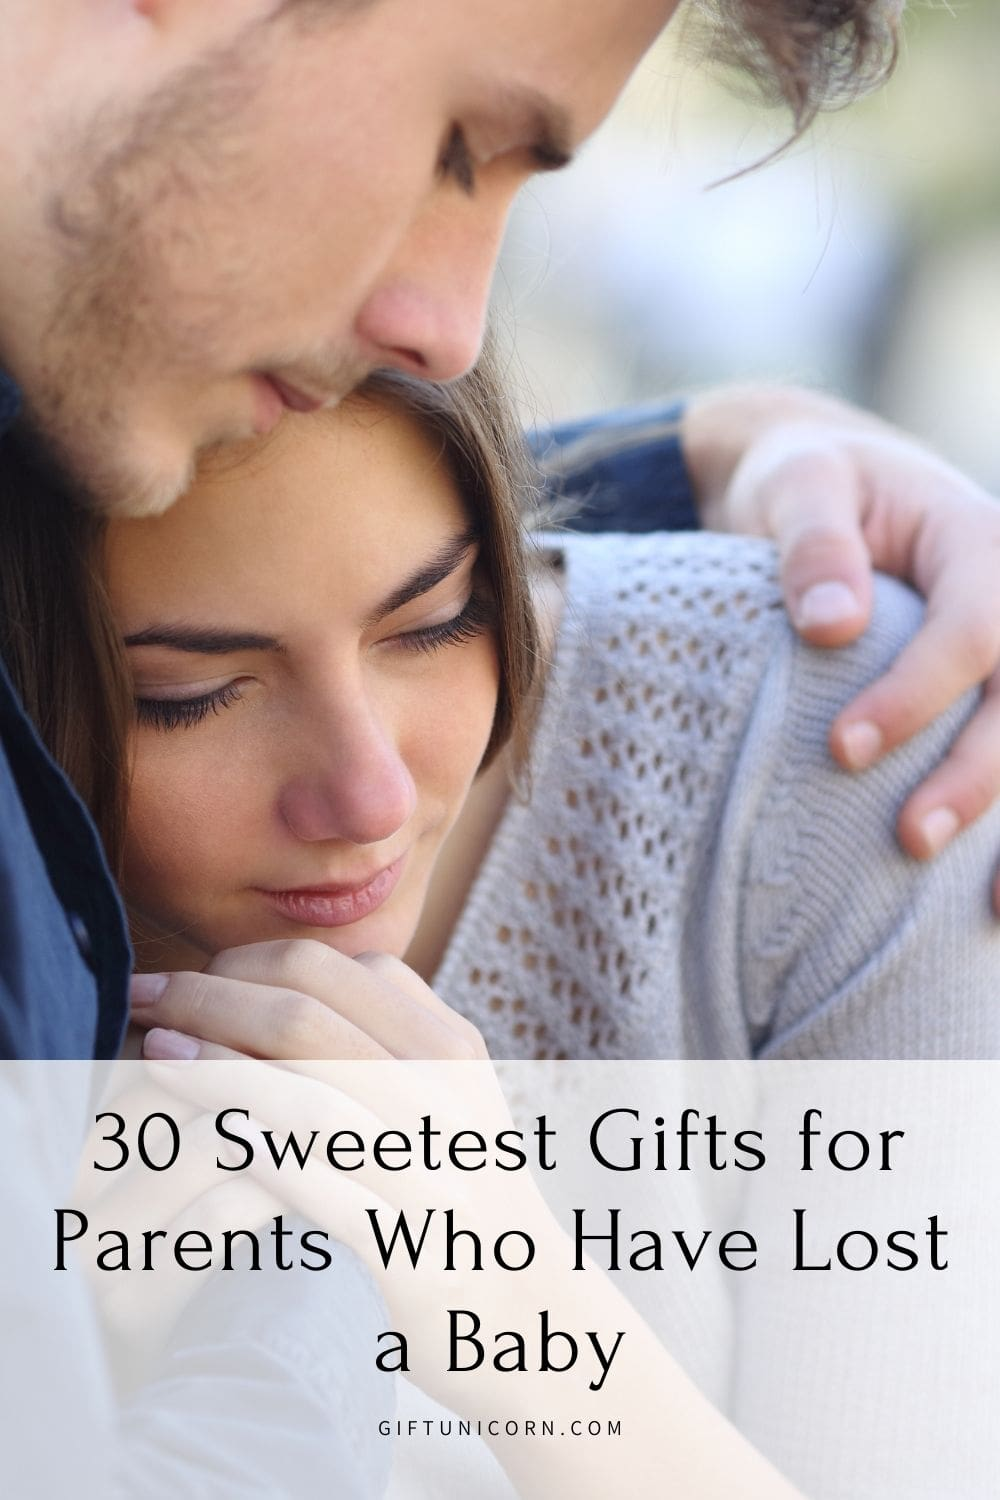 30 Sweet presents for parents who lost a child